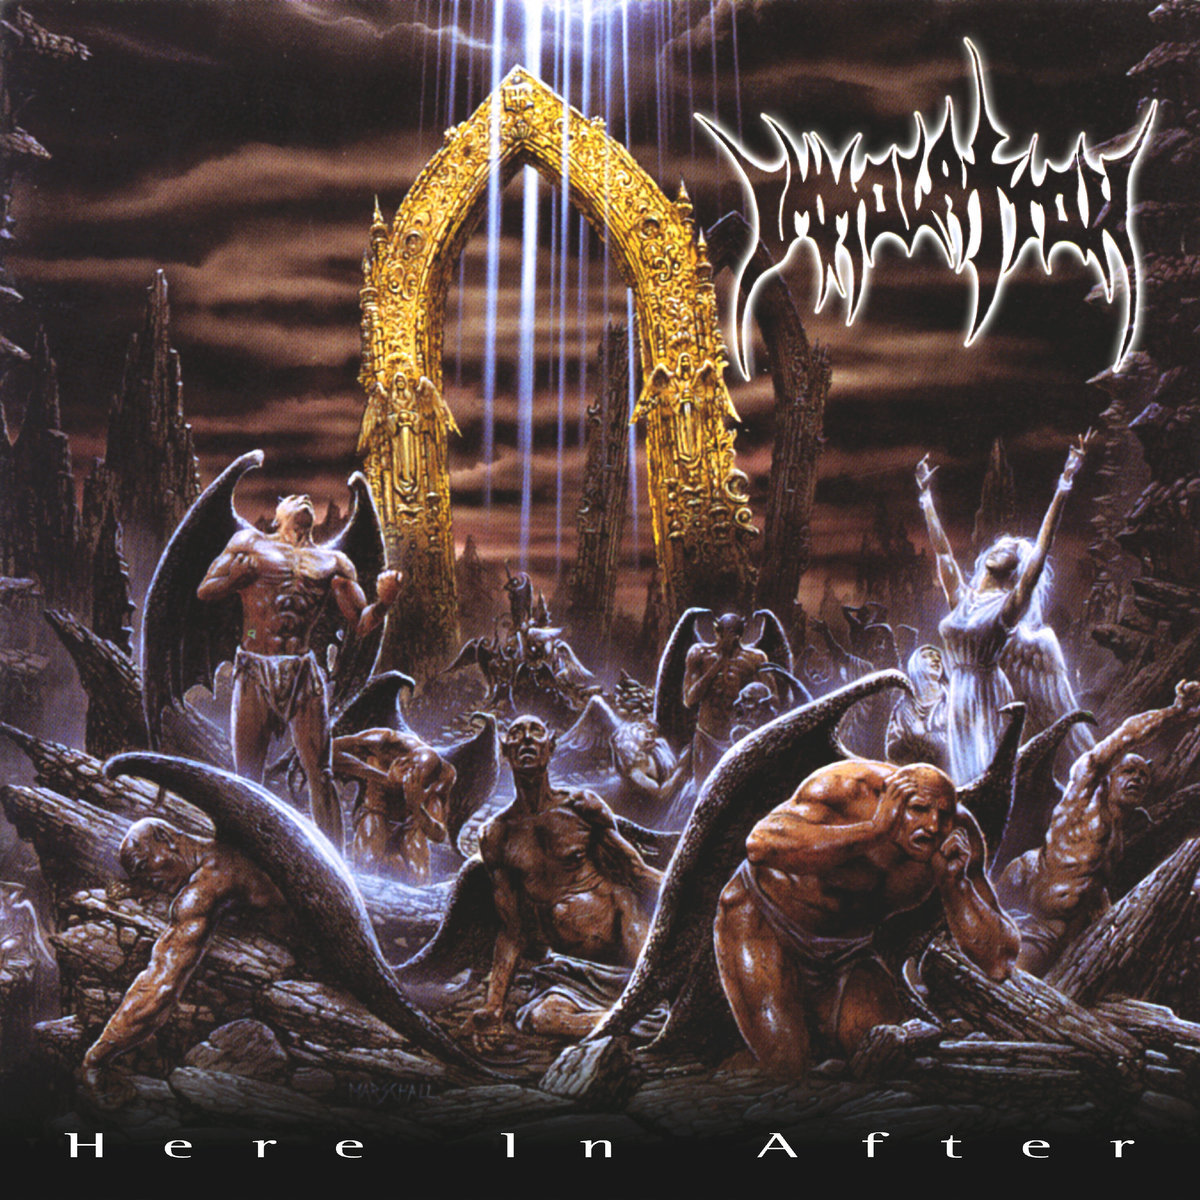 IMMOLATION - Here in After CD | Possession